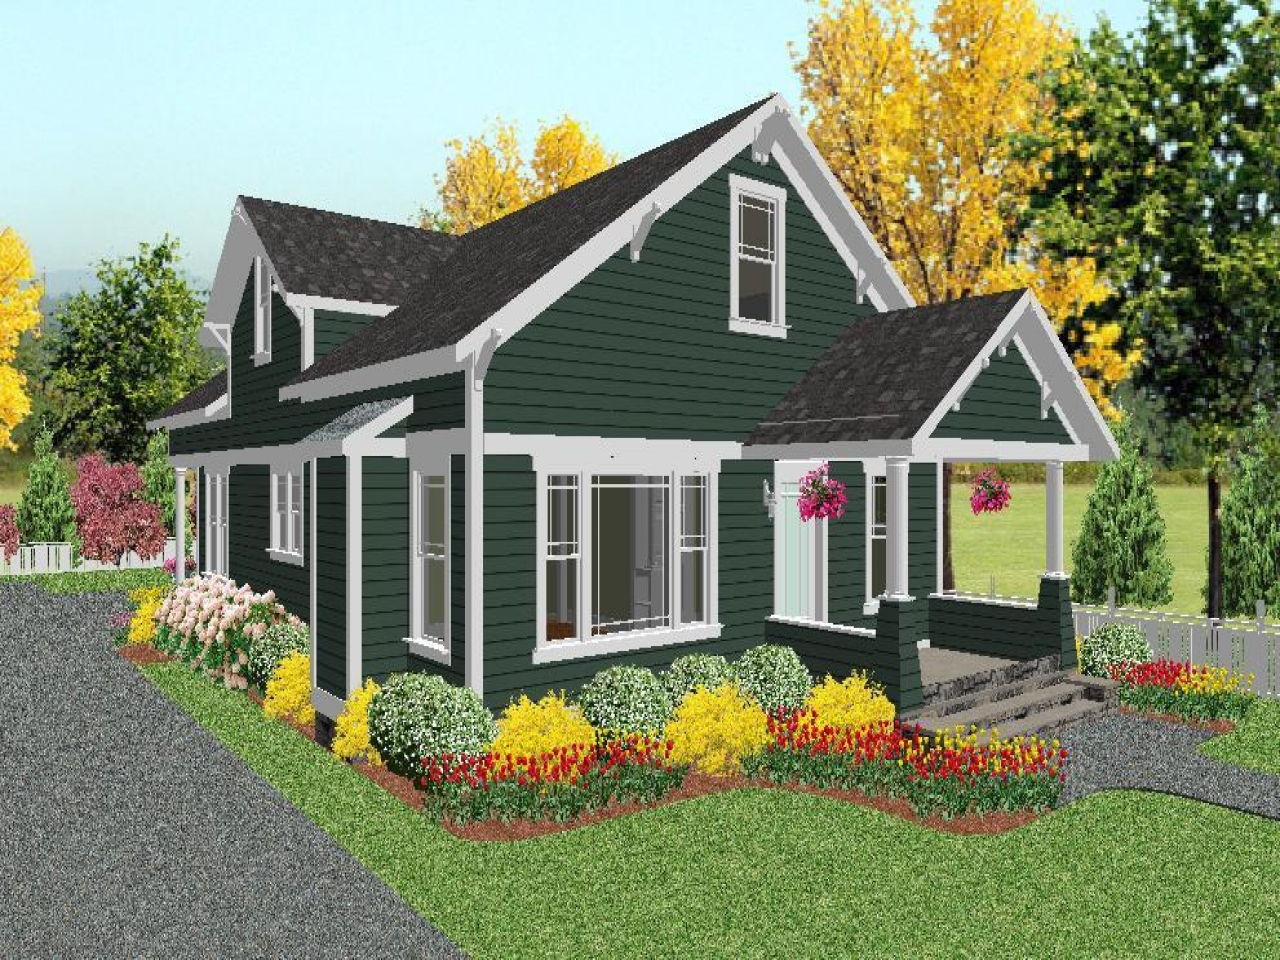 Craftsman style modular homes modular homes craftsman for Bungalow style modular homes